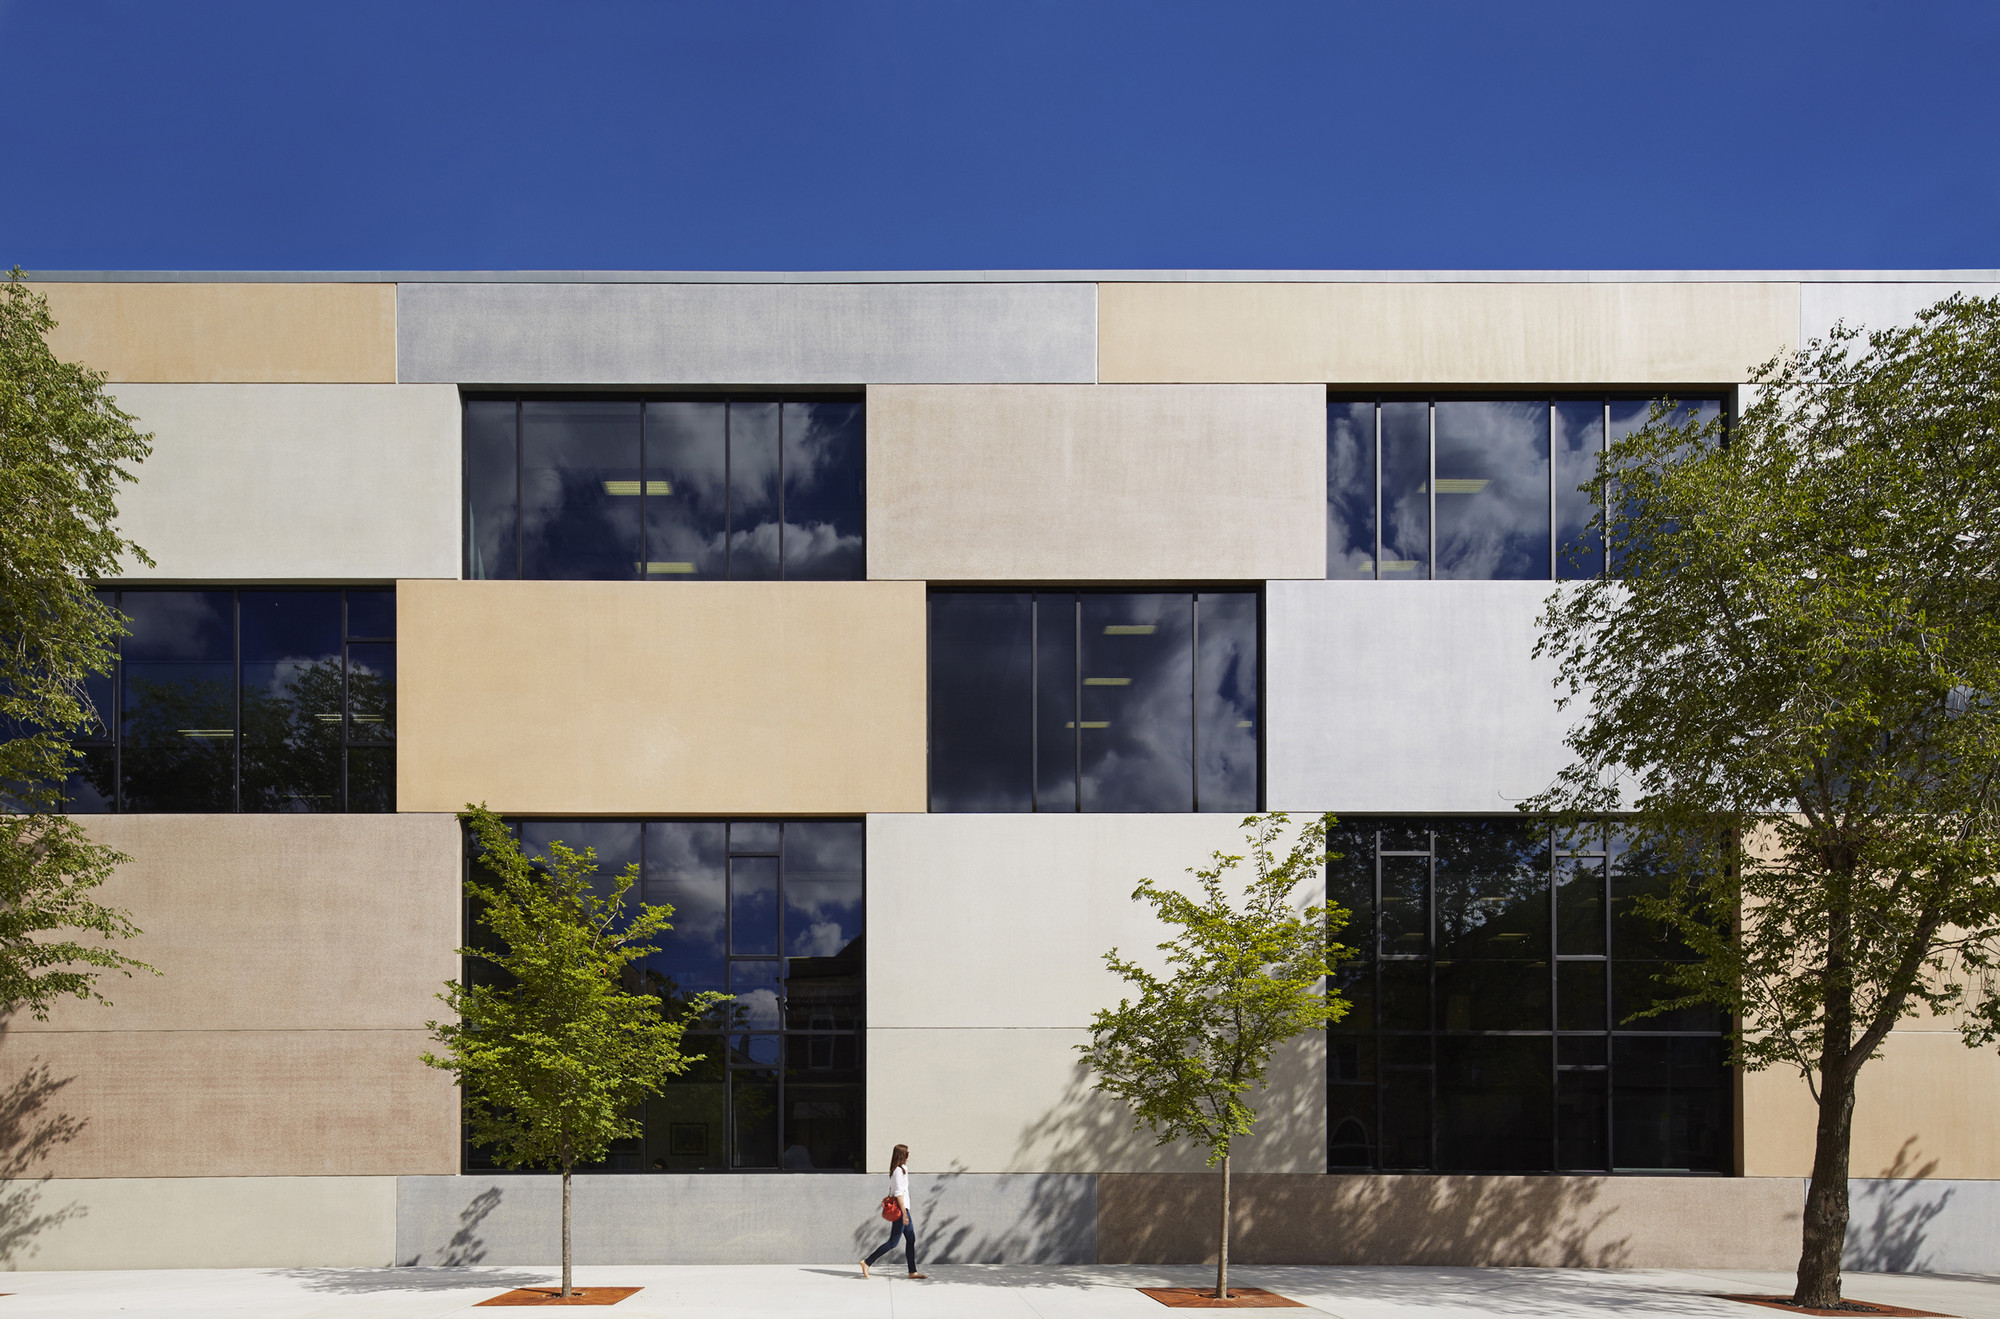 Erie Elementary Charter School / John Ronan Architects, © Steve Hall, Hedrich Blessing